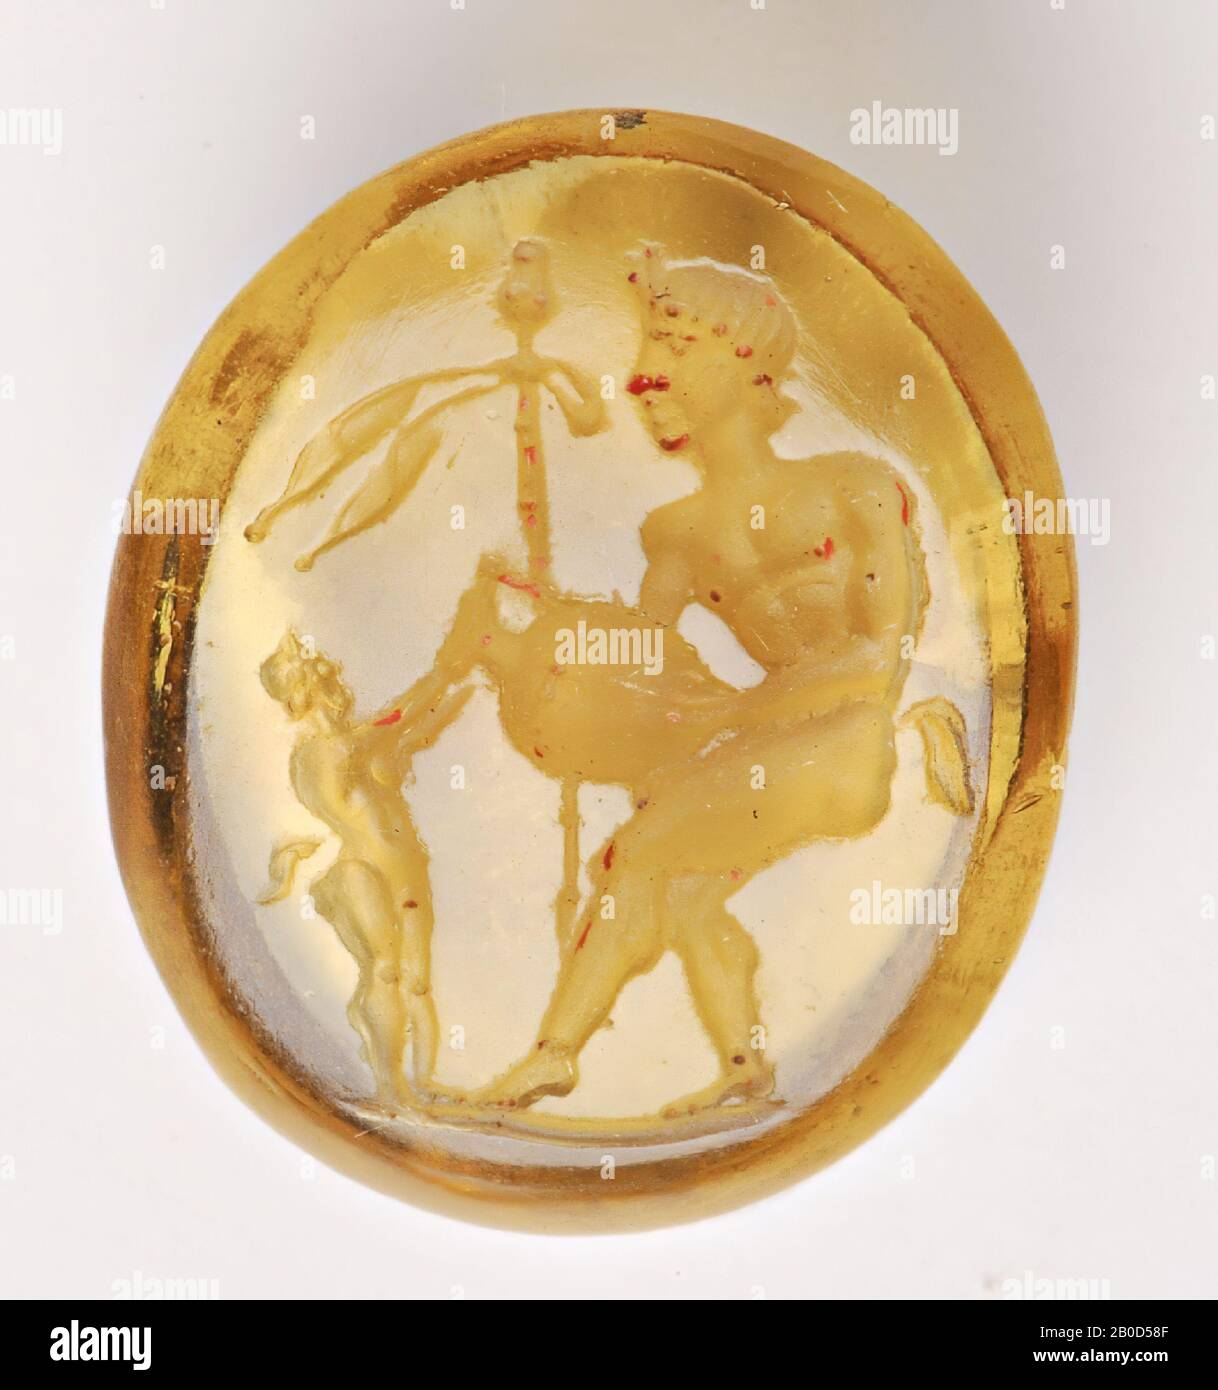 Vz: a large satyr has an amphora where the little satyr holds the neck, in the background a thyrsos., Gem, intaglio, unknown, Color: yellow, Shape: oval, Processing: edge at the back receding cut compared to front, 12 x 15 x 3.5 mm Stock Photo